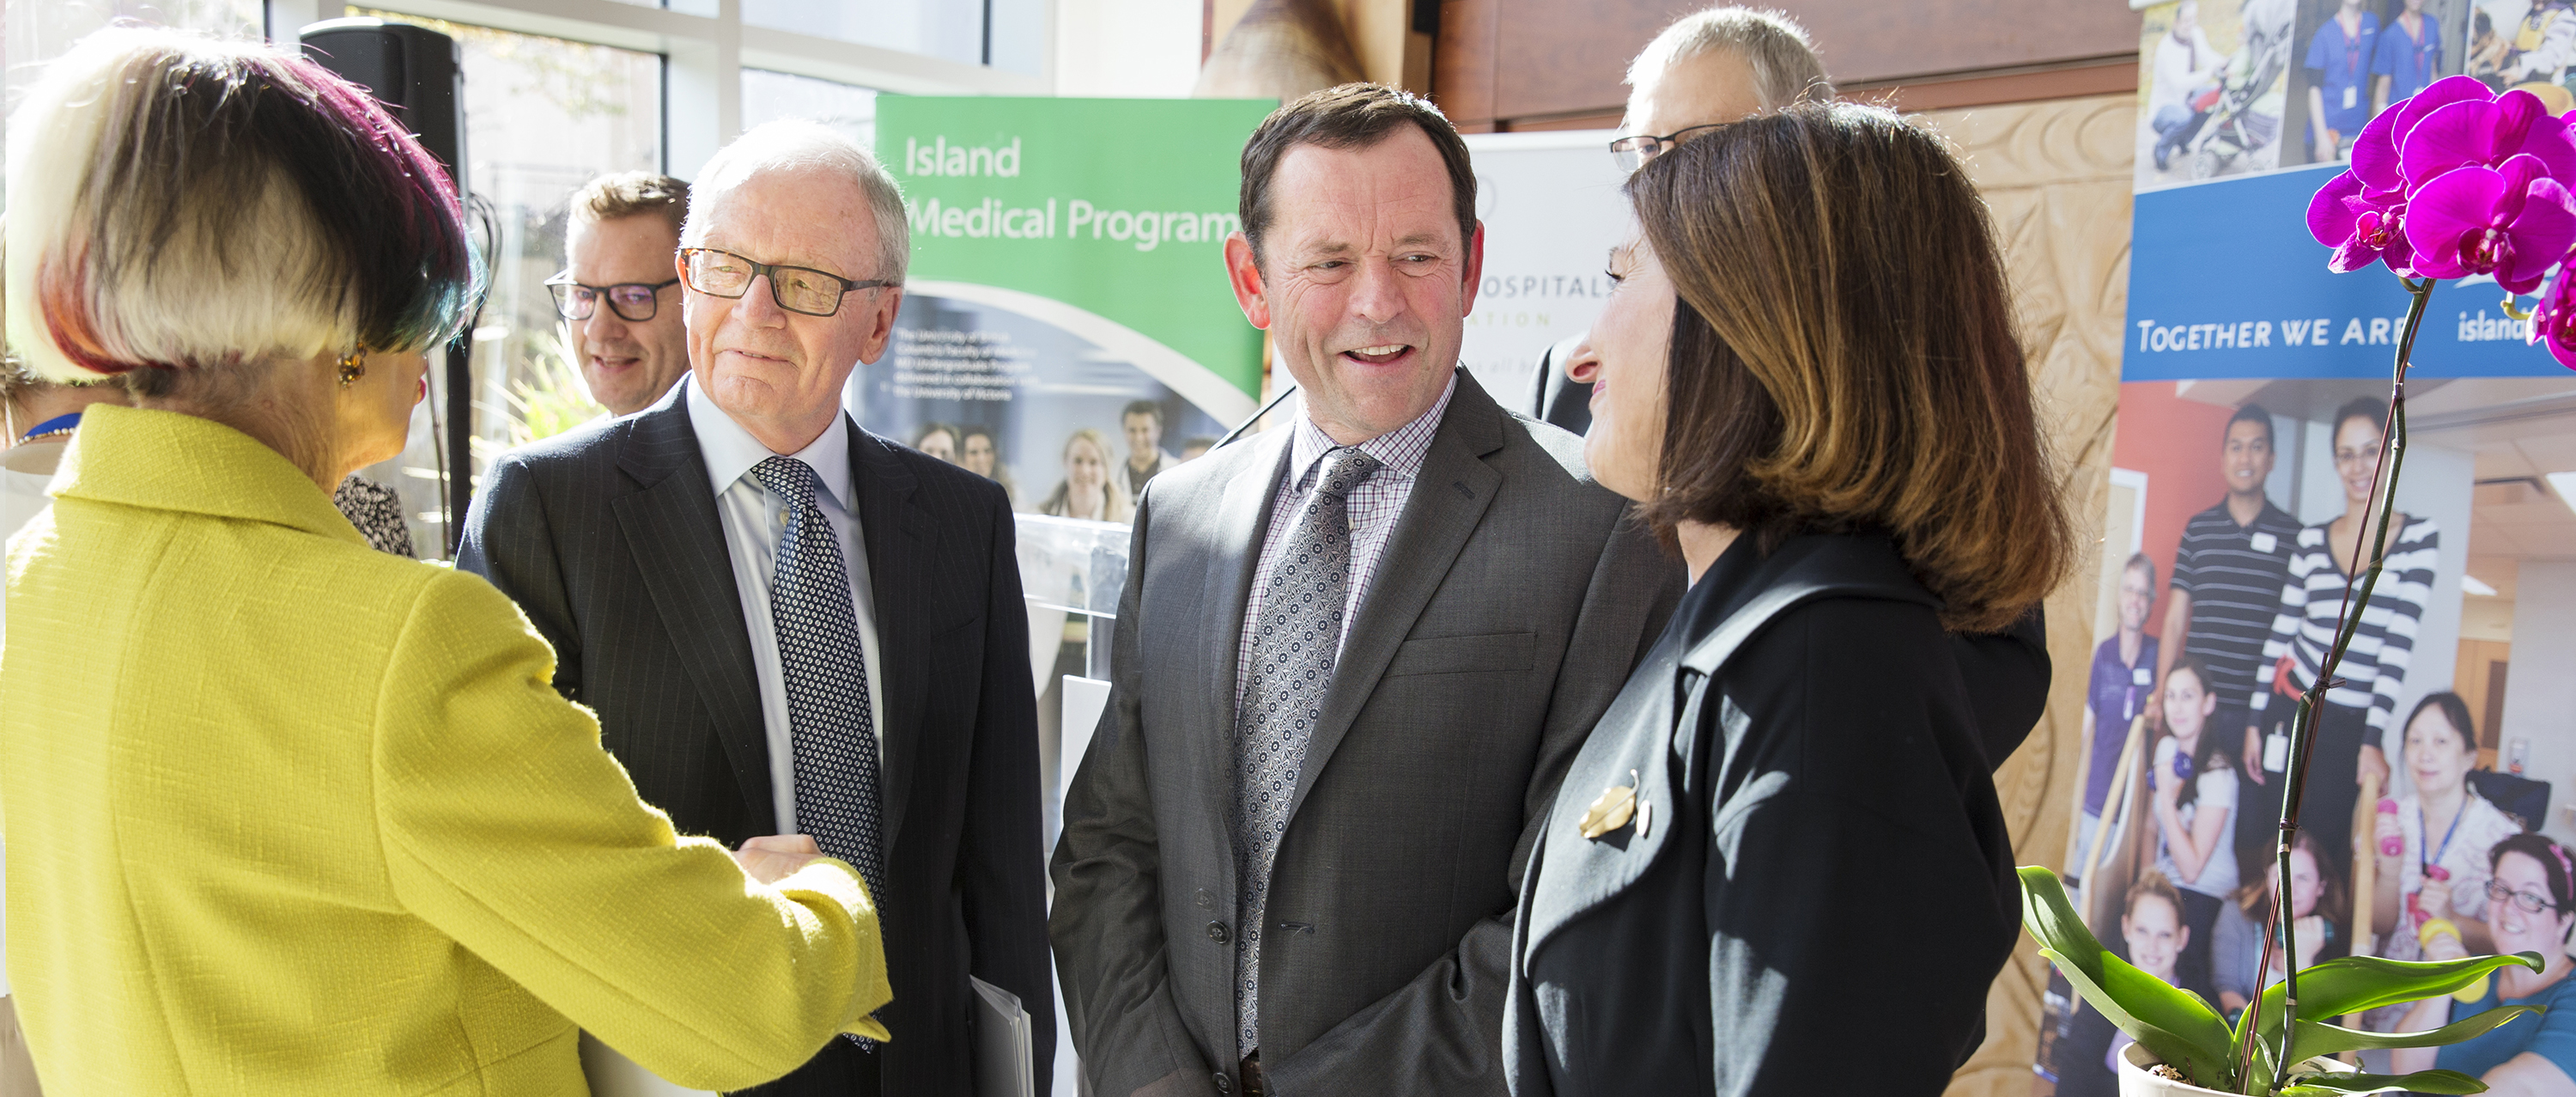 Donor Neil Manning, second from left, talks with UVic President Jamie Cassels, Island Health board chair Leah Hollins and Victoria Hospitals Foundation President Melanie Mahlman after Thursday's announcement of the Cognitive Health Initiative.